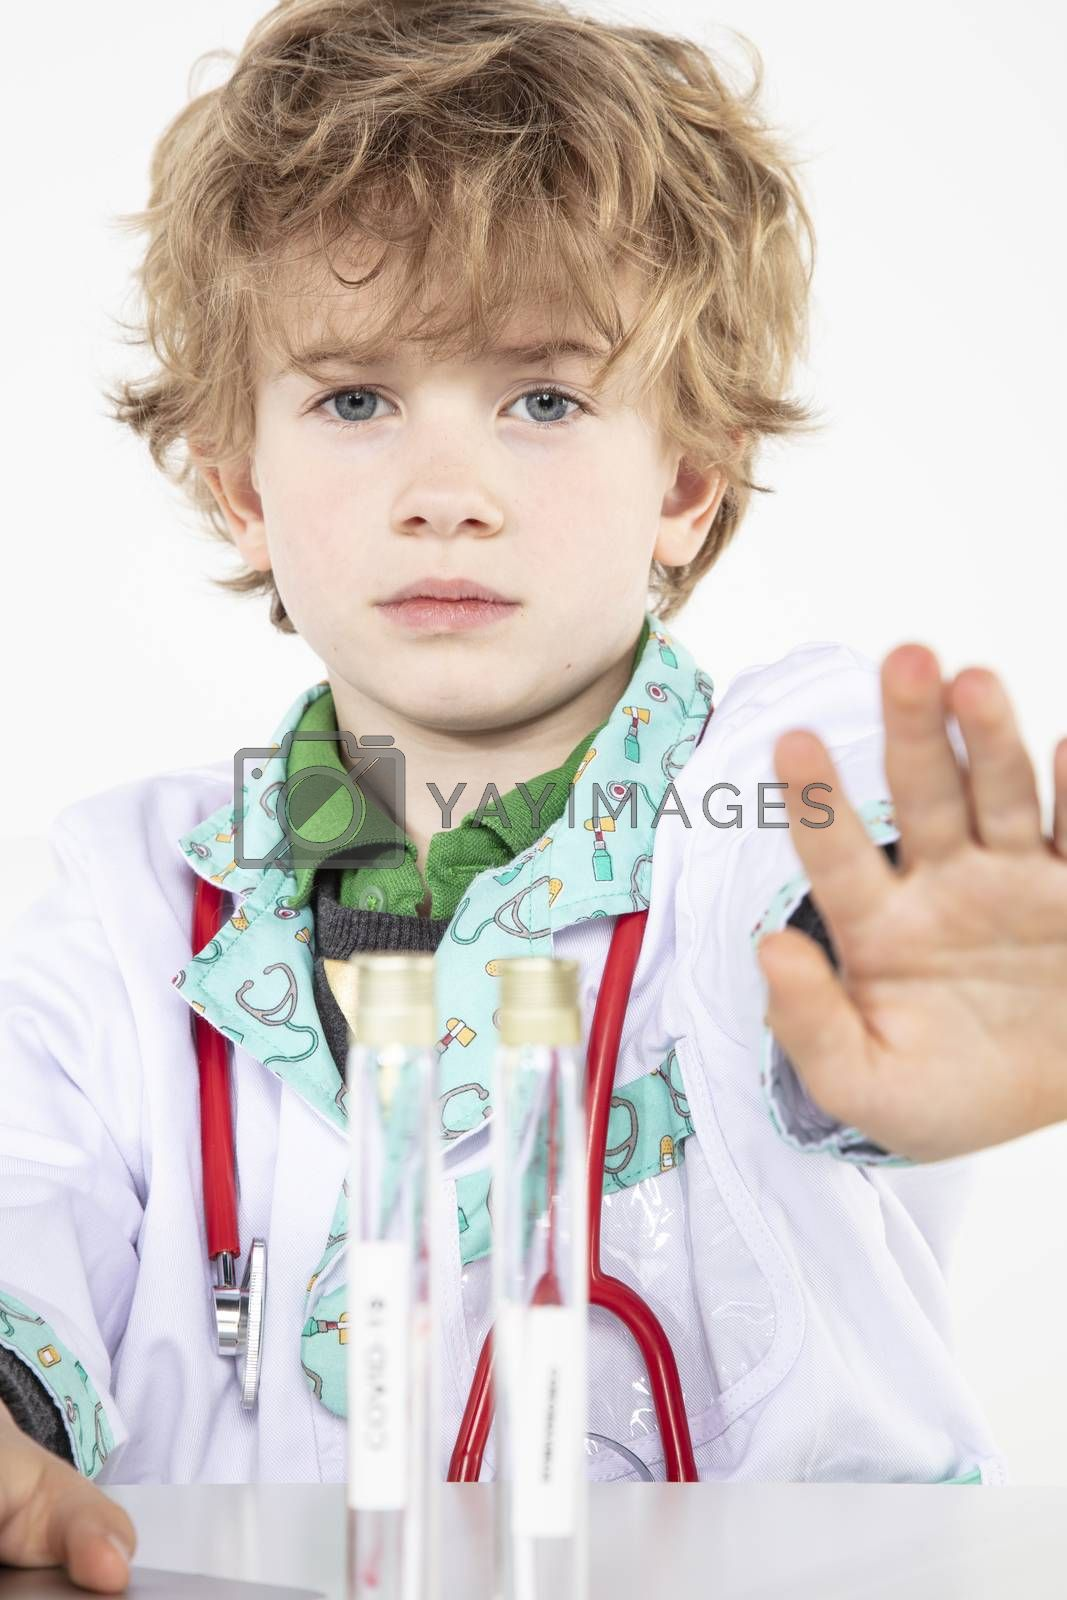 little doctor shows stop sign with his hand